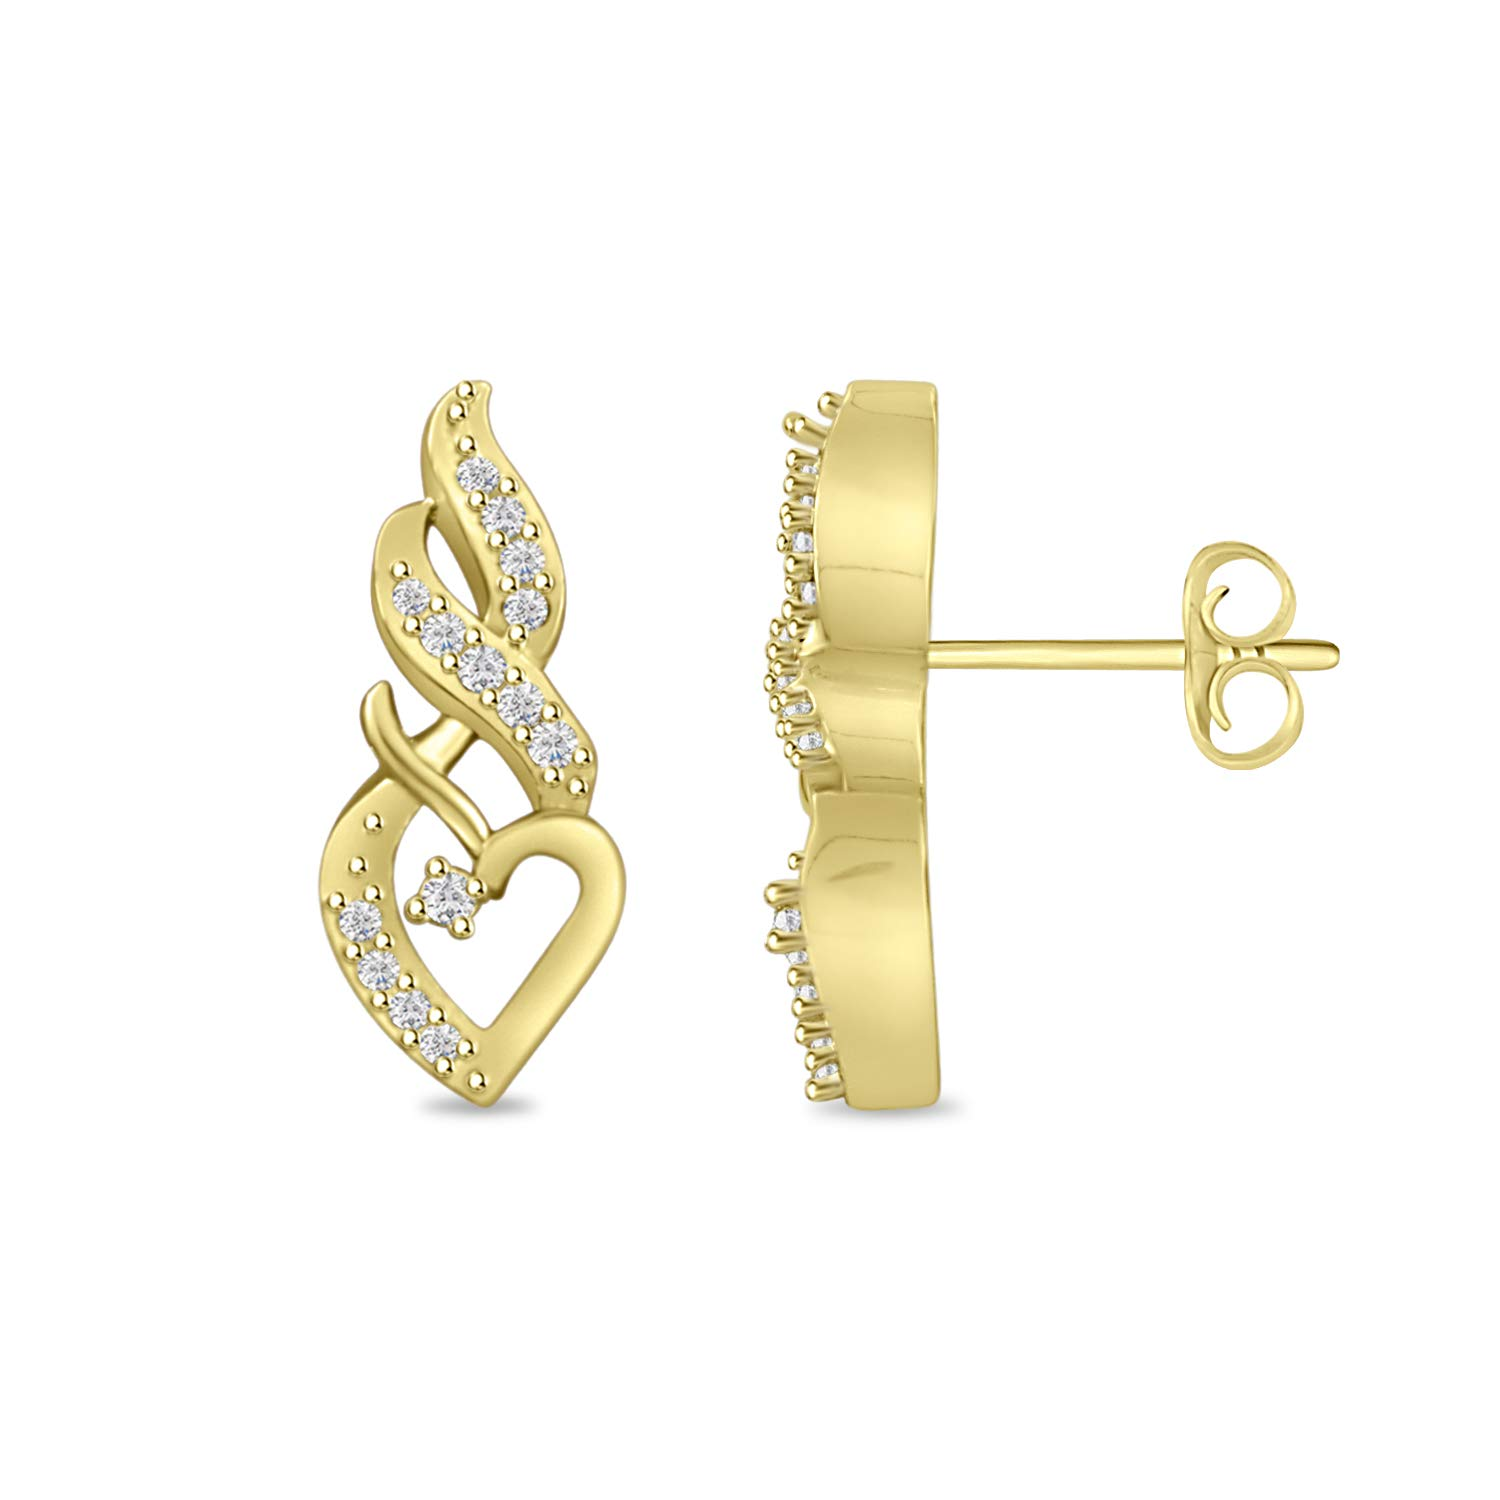 Round Cubic Zirconia Heart Infinity Stud Earrings for Women Girls in 14k Gold Over